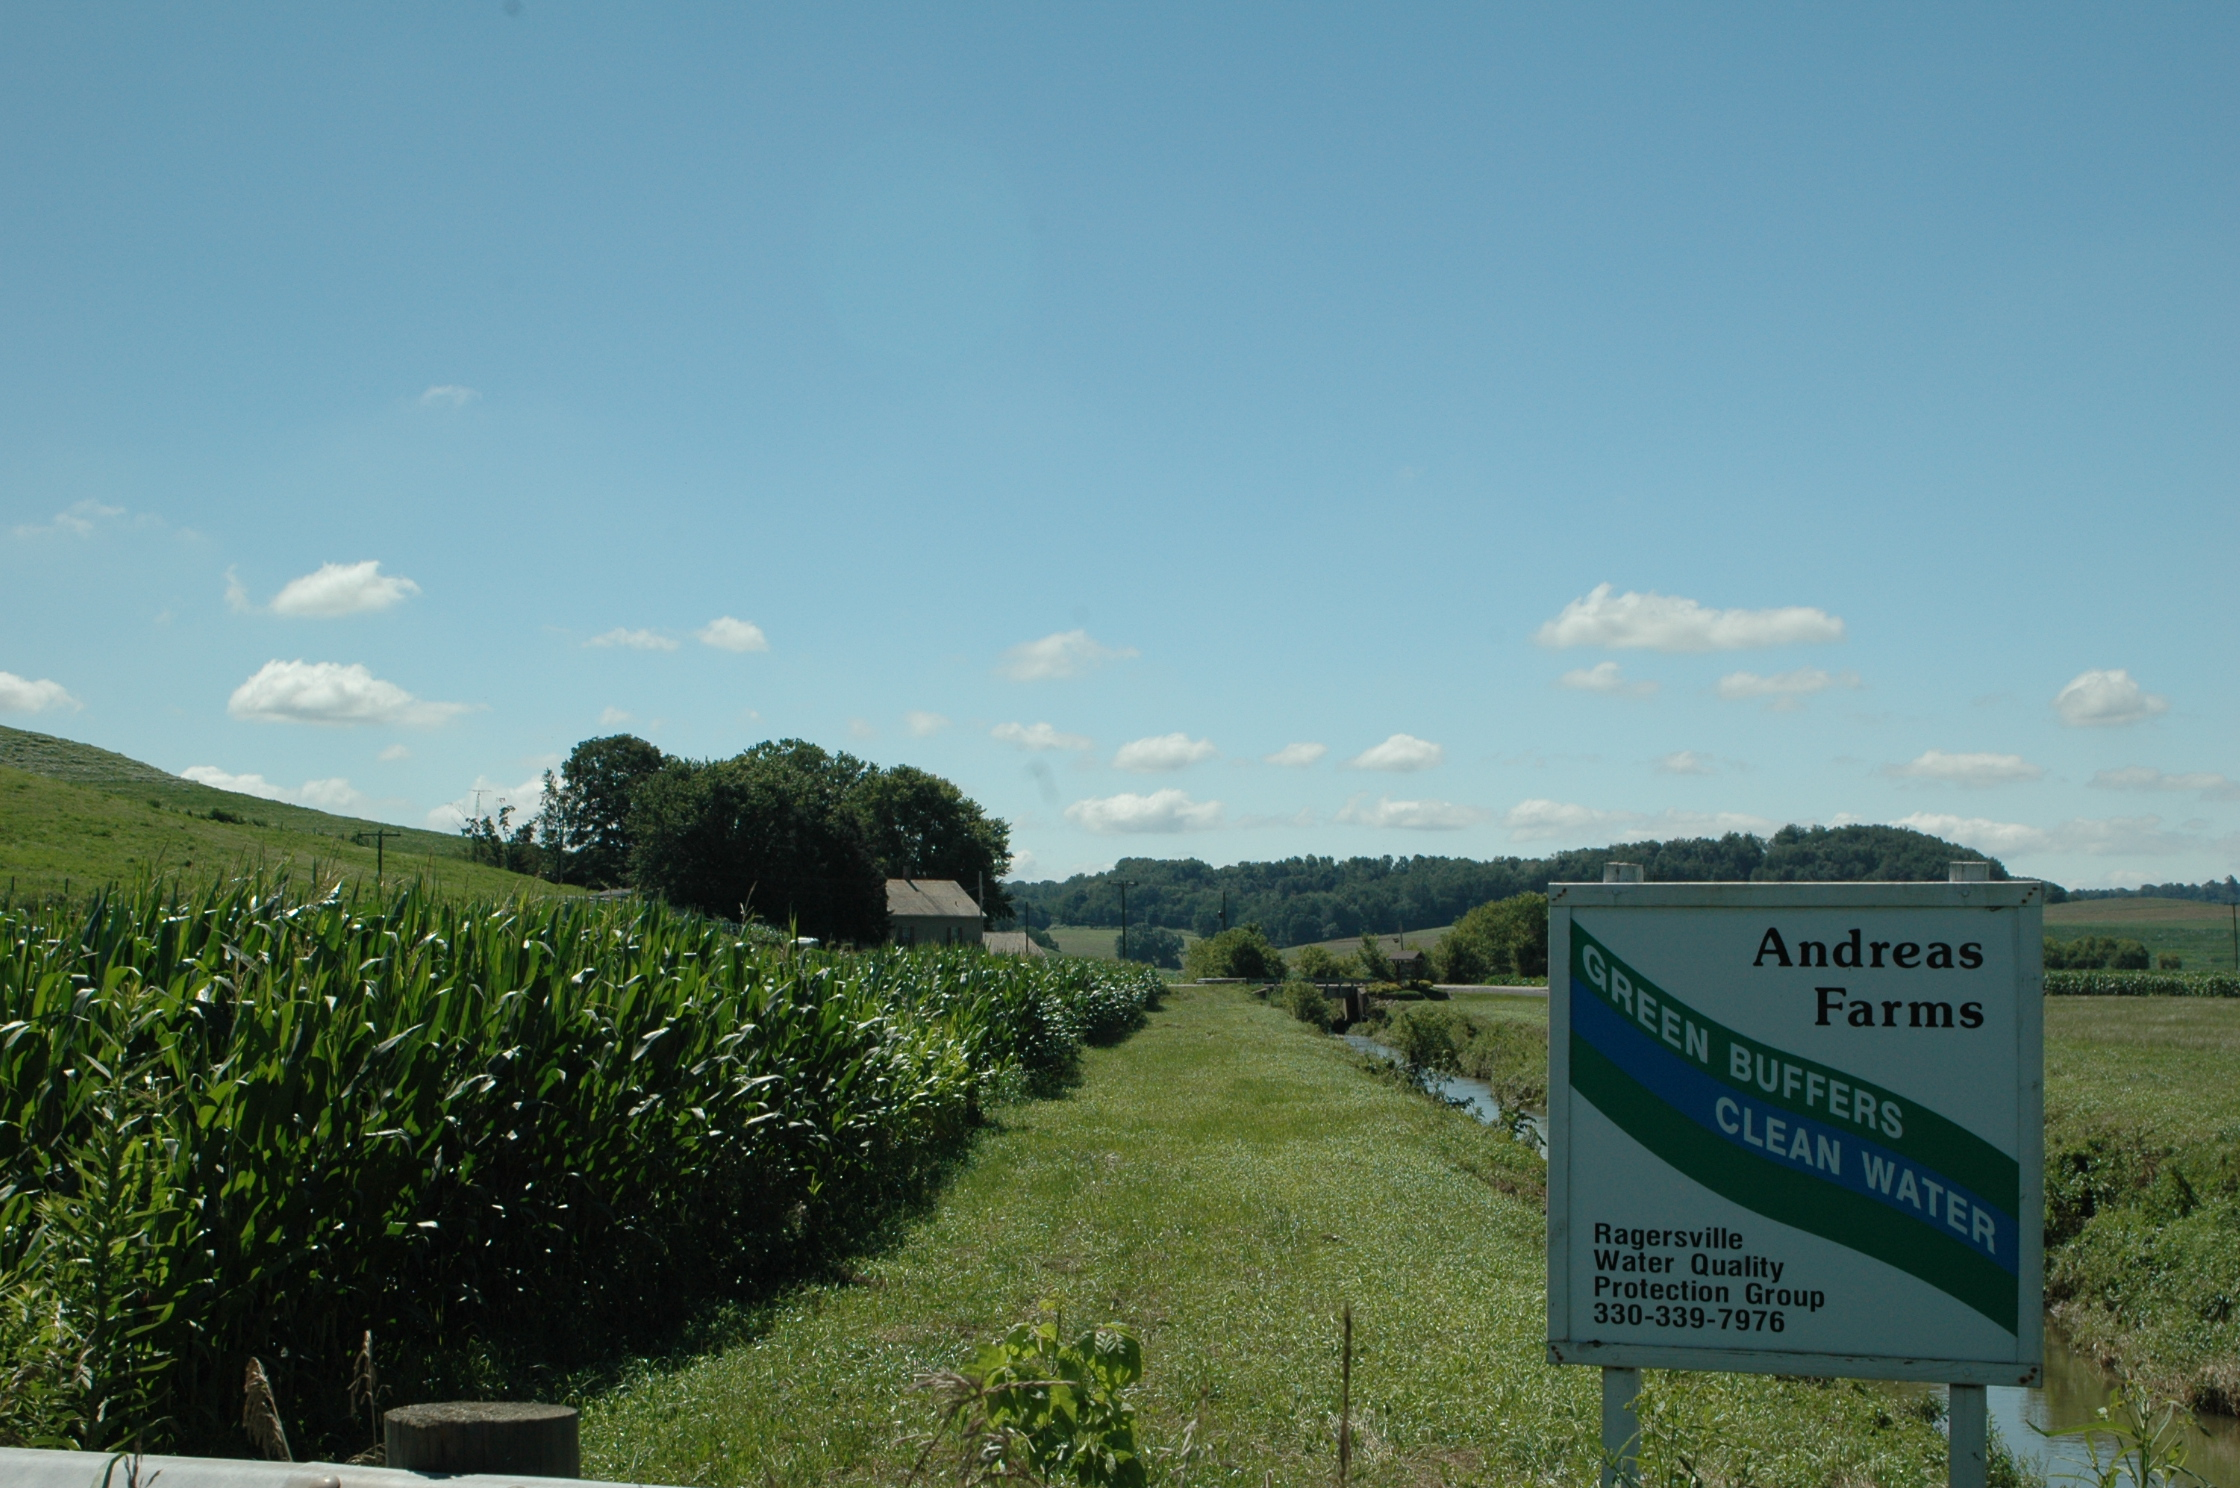 Andreas Farm installed a buffer to help improve water quality.